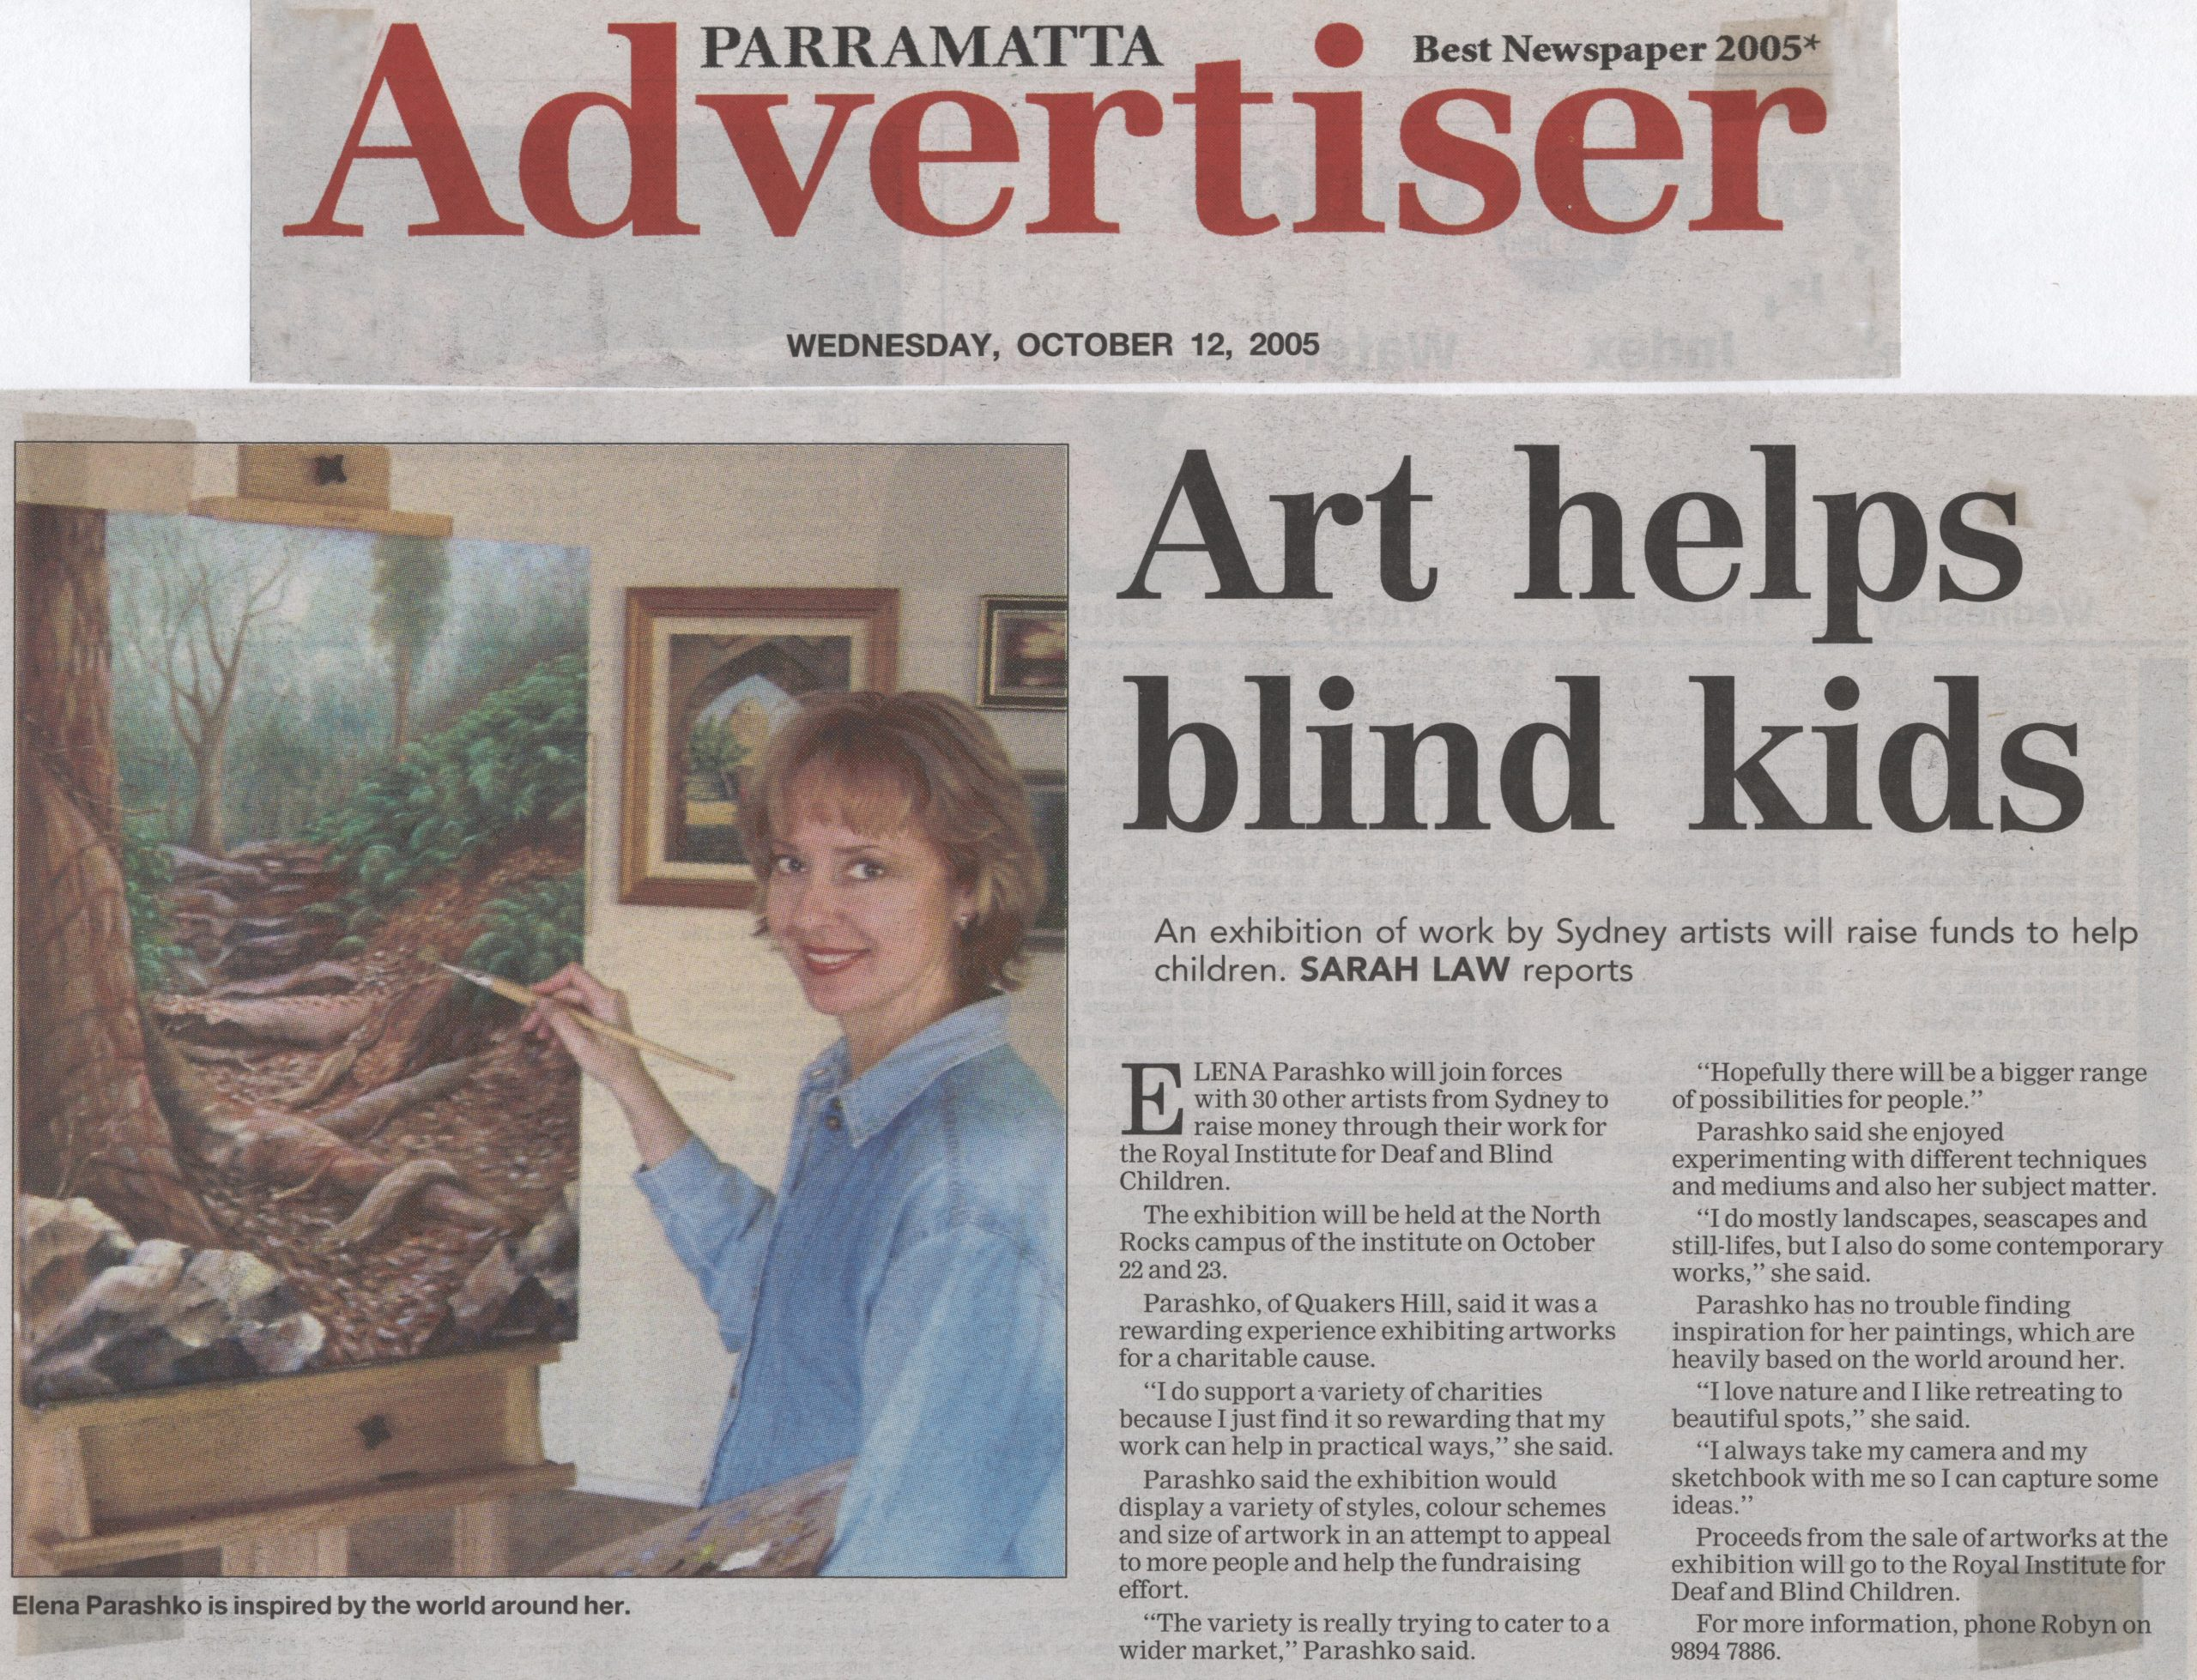 art helps blind kids